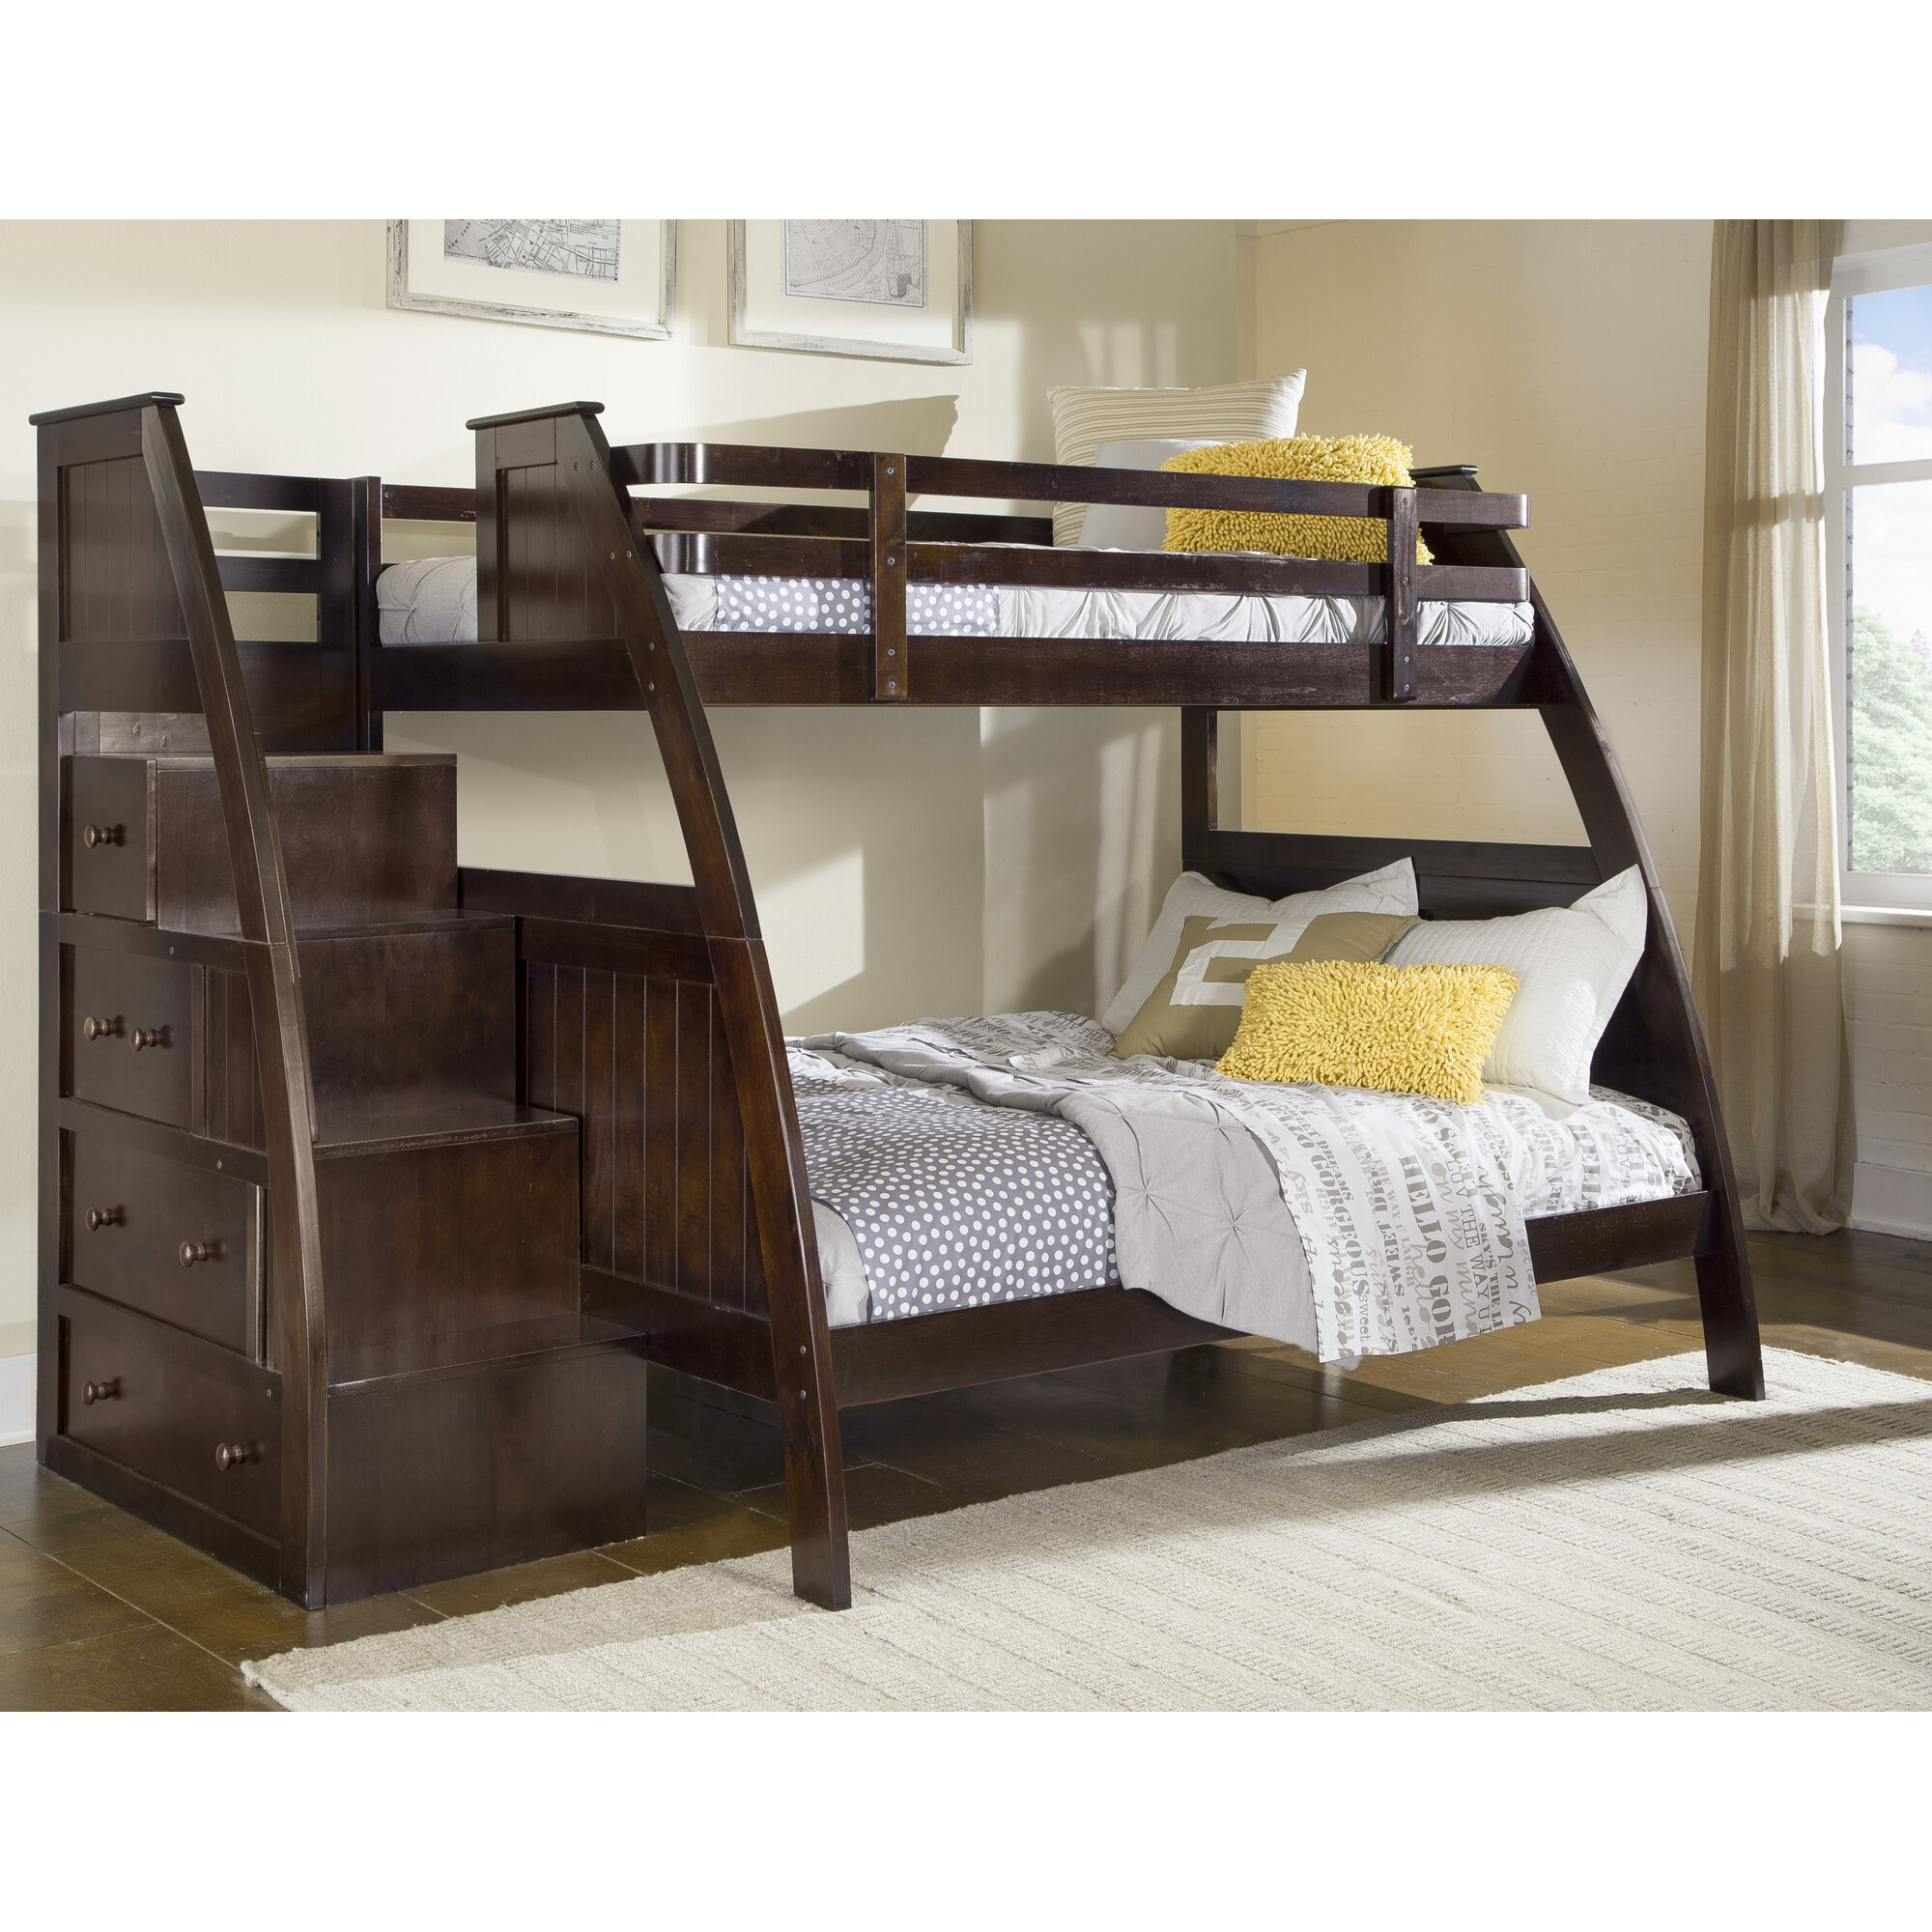 Sebring Twin Over Full Bunk Bed With Storage